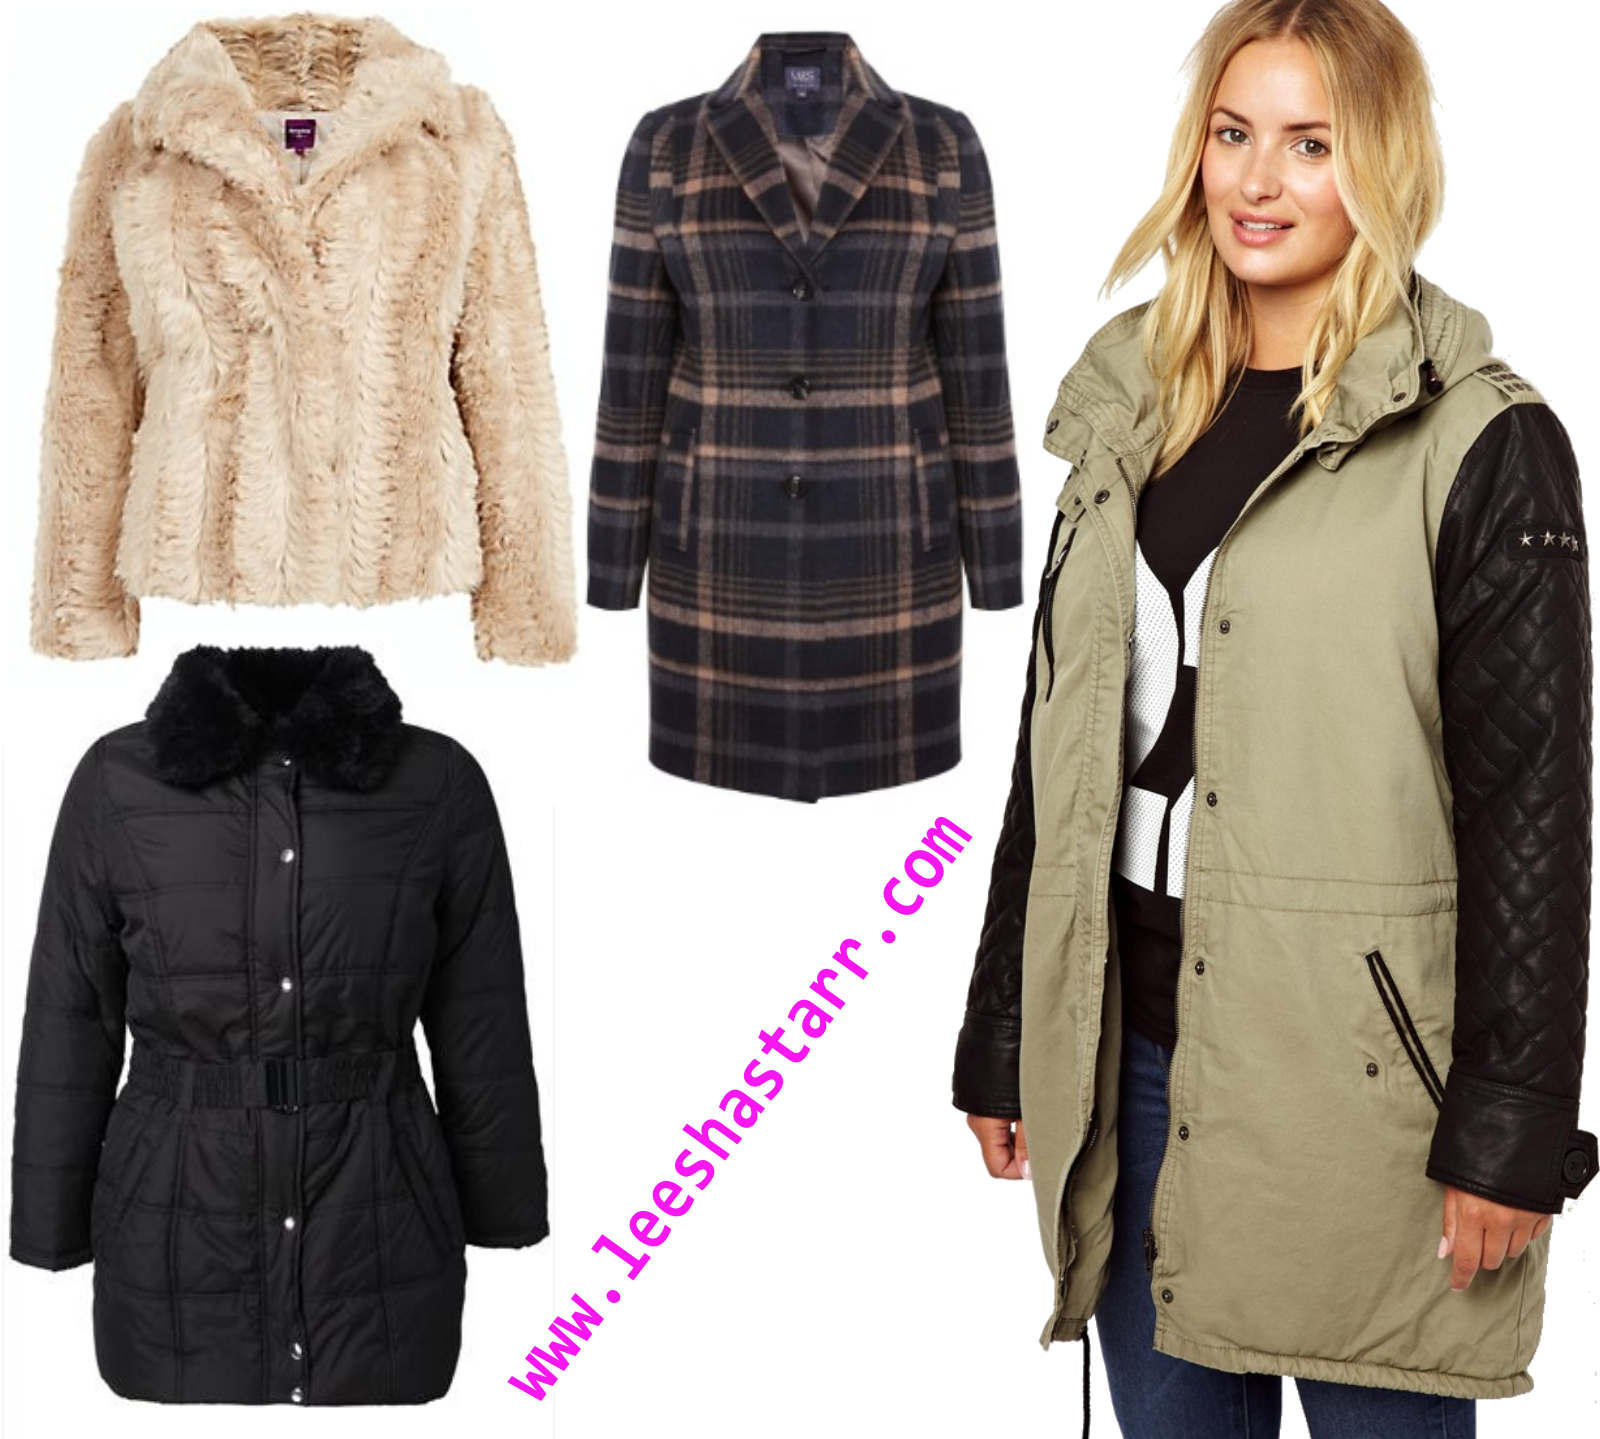 219bb4cc386 Yours Clothing Black quilted fur collar jacket  Price £55. M S Checked Coat  with Wool  Price £89. ASOS Quilted Leather Look Sleeve Parka  Price £110